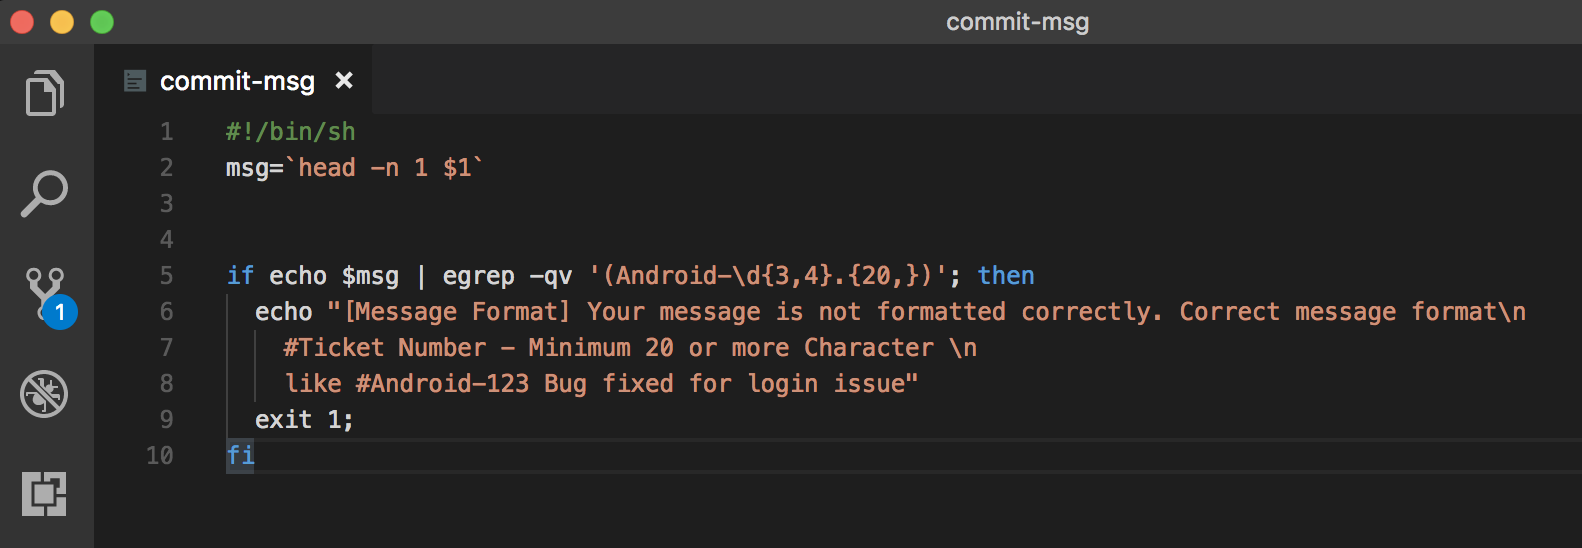 Case Study for Android CI -> CD -> CD = Continuous * ( Integration